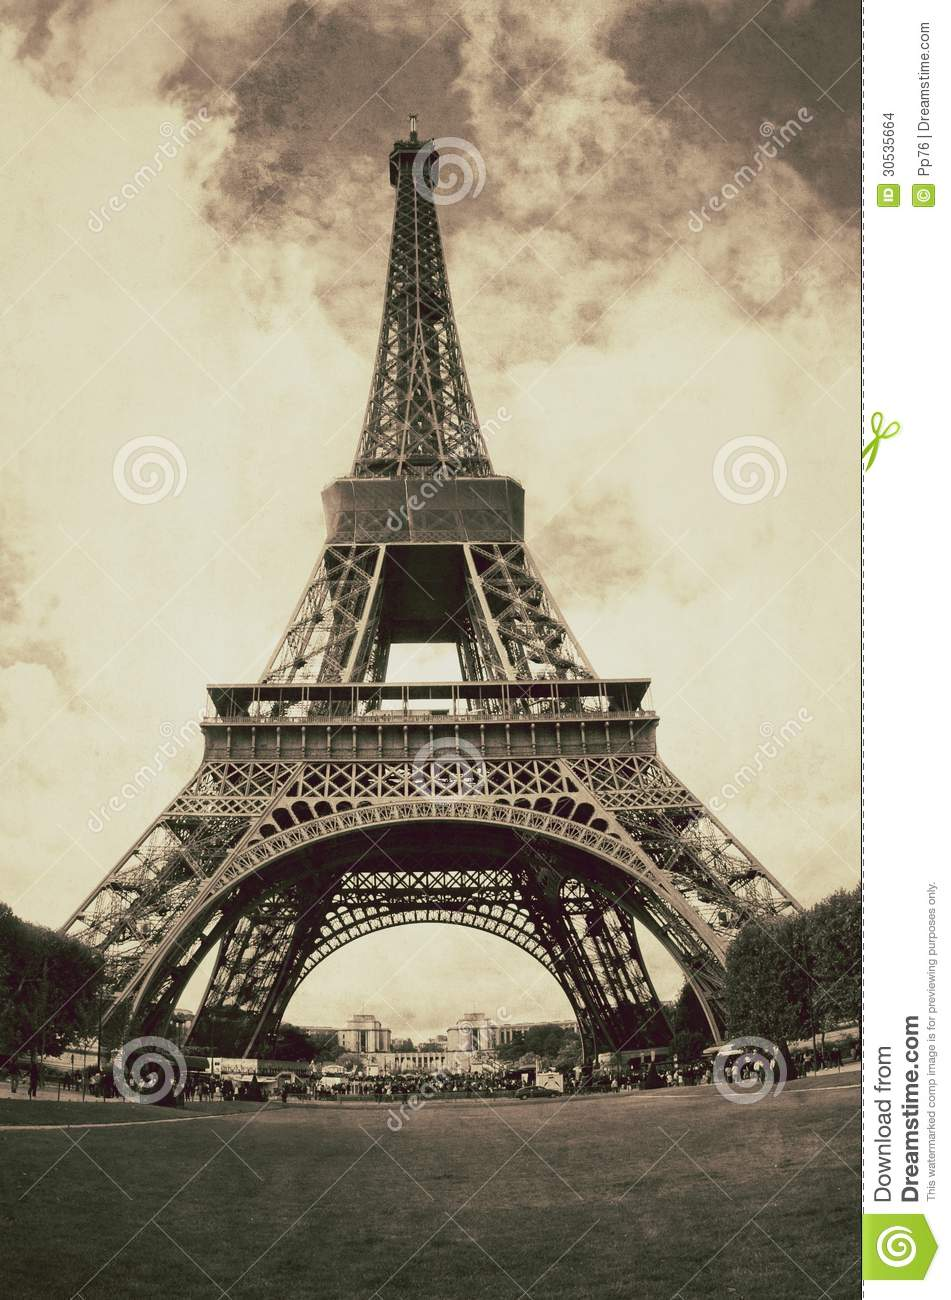 Vintage View Of The Eiffel Tower In Paris France Stock